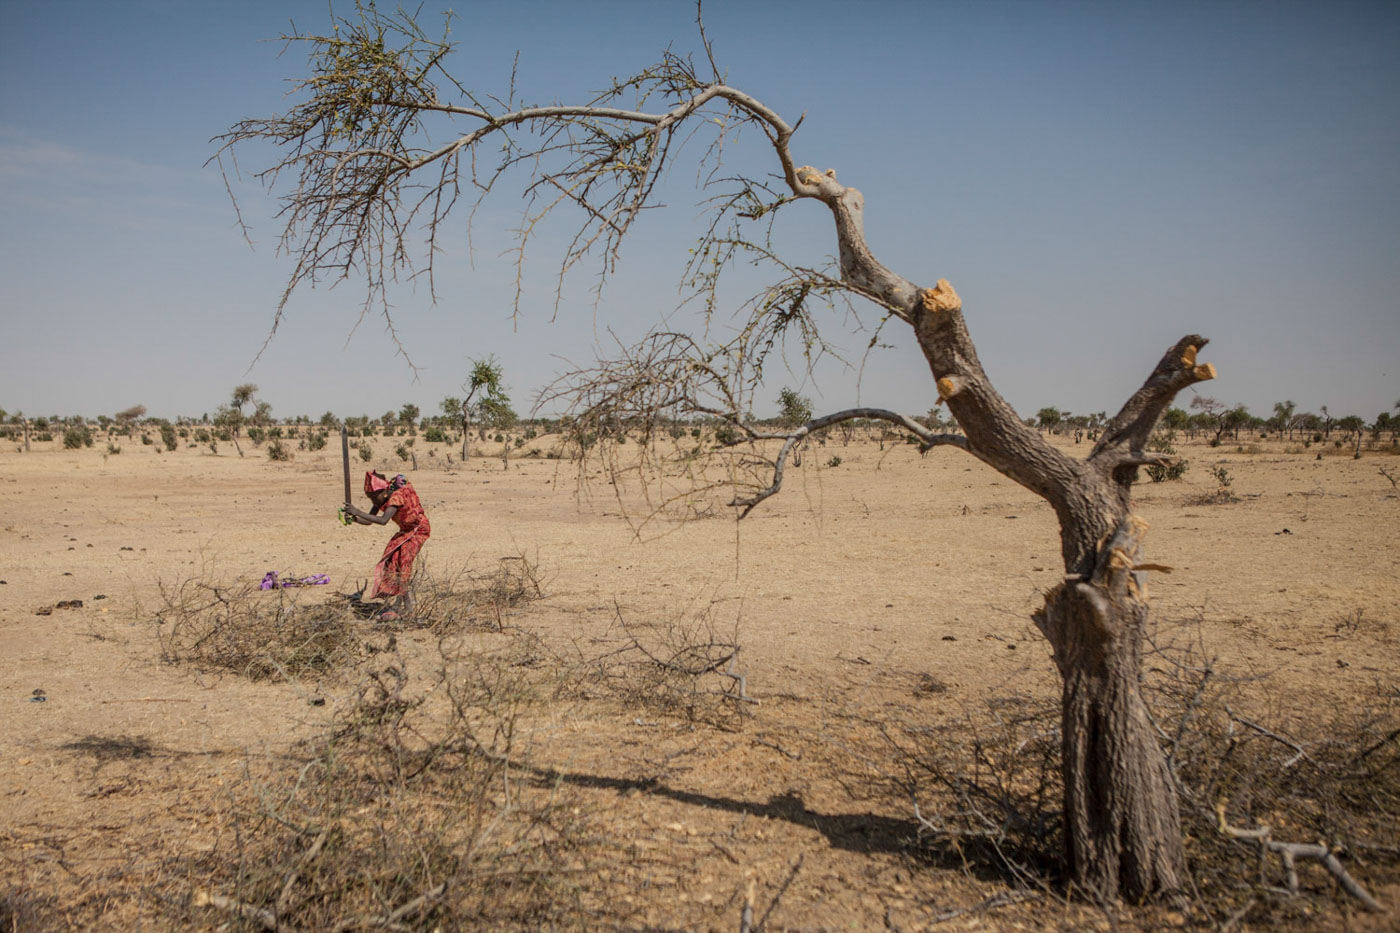 A girl originally from Nigeria breaks down remaining branches from trees cut by other refugees outside of Guam Guam camp in Diffa, Niger.Garin Wanzam Camp is the largest camp in the region hosting almost 23,000 displaced people. Many cut down trees in the area in order to help reduce the cost of firewood which can cost up to 30-40 percent of a family's monthly budget.